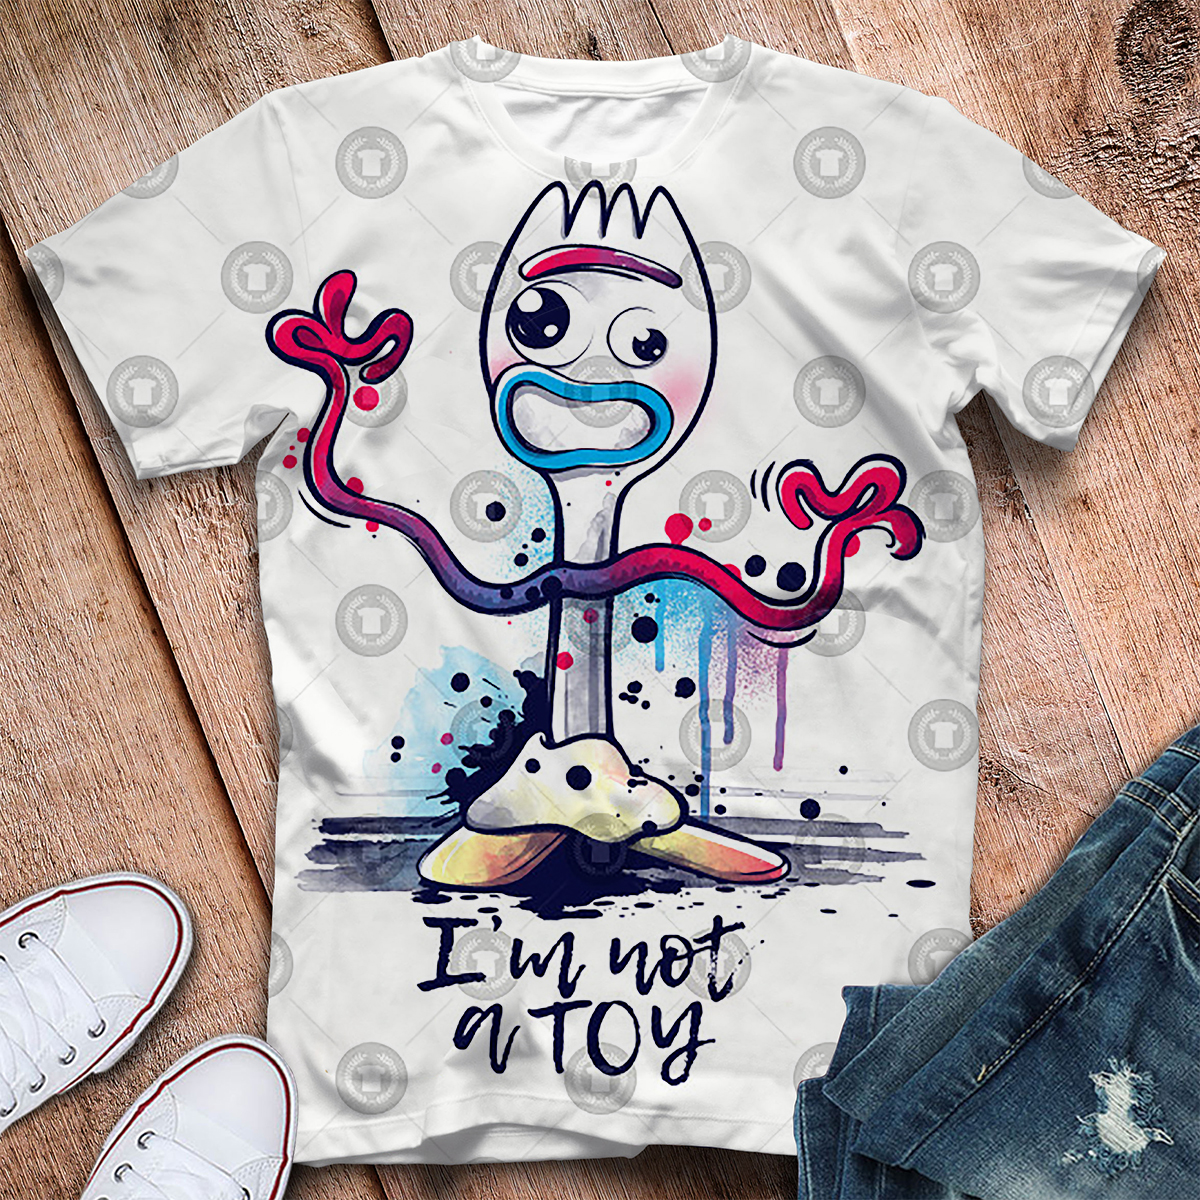 2019 Forky New Toy Story 4 The Walking Toys 3d Printed T Shirt Men's Short Sleeve Cute T Shirt Drop Shipping